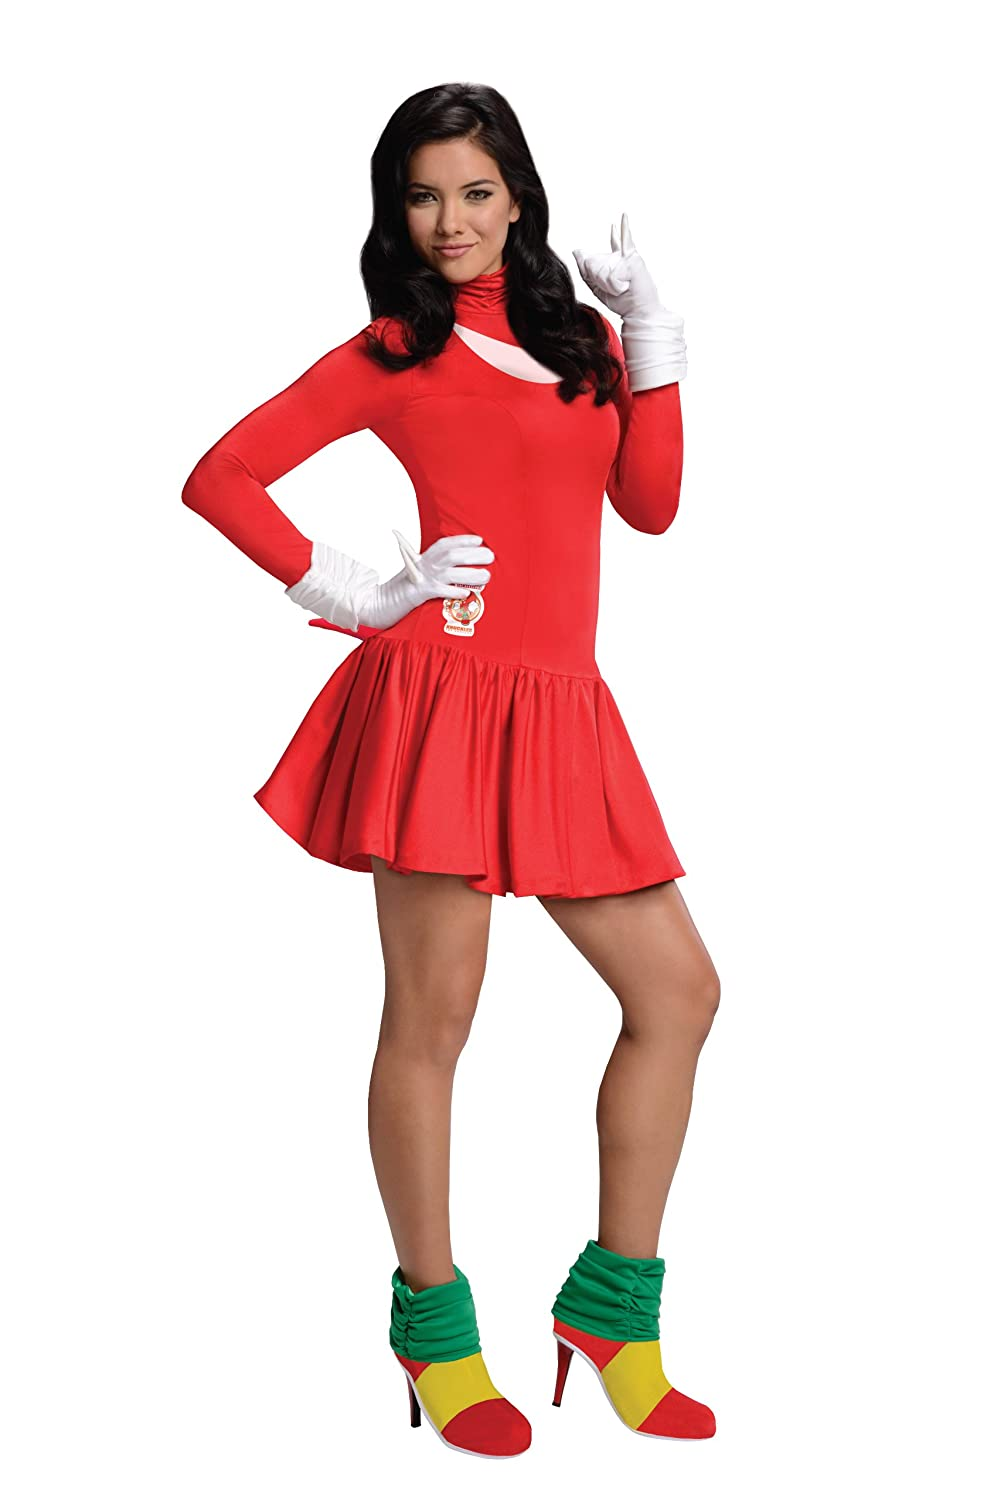 Amazon.com Rubieu0027s Costume Sonic The Hedgehog Adult Knuckles Dress and Accessories Clothing  sc 1 st  Amazon.com & Amazon.com: Rubieu0027s Costume Sonic The Hedgehog Adult Knuckles Dress ...